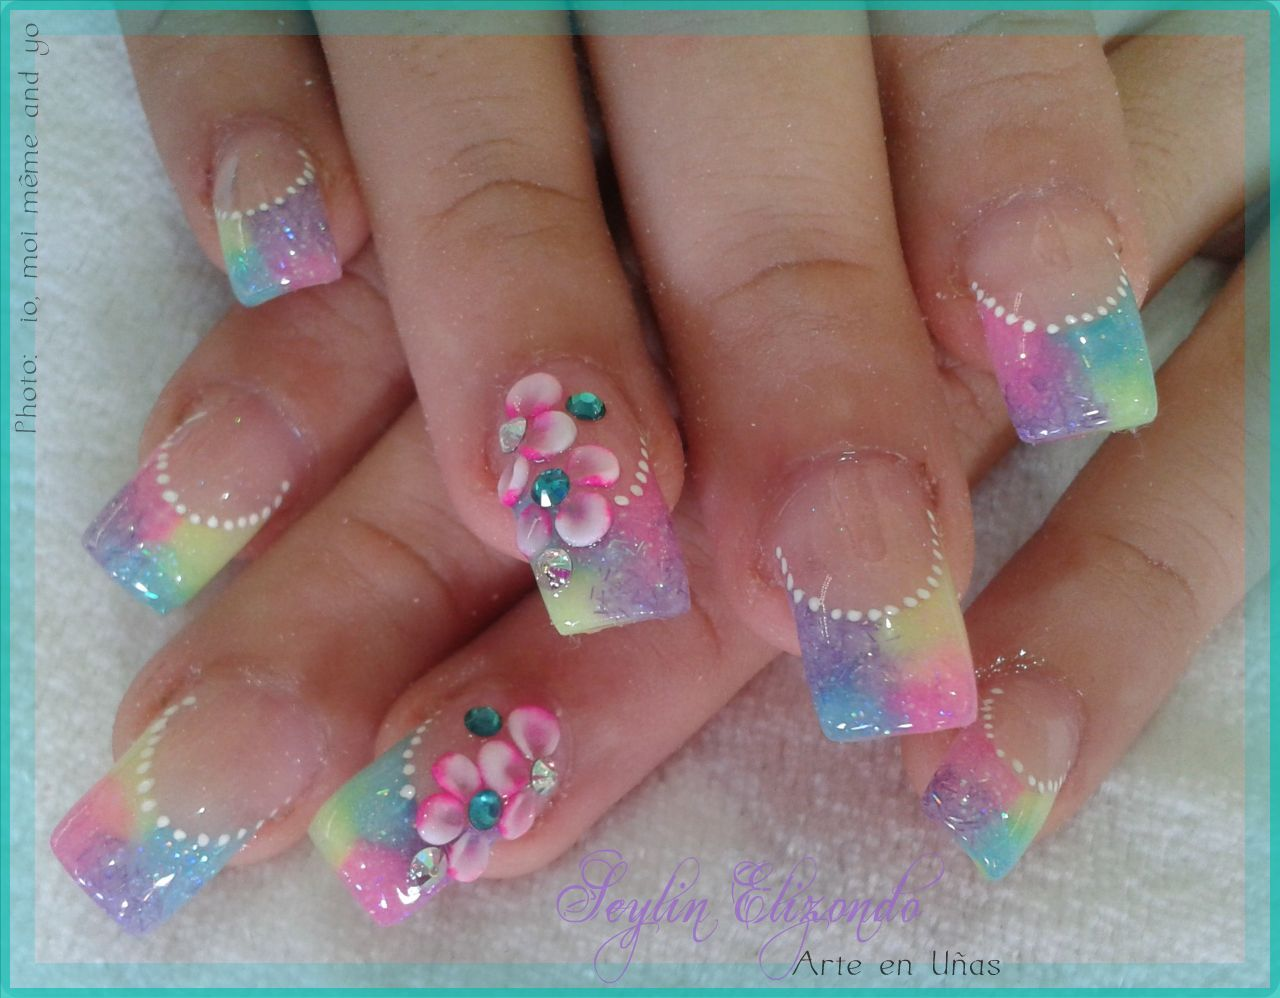 Diseño # 7 | Gel/Acrylic/Sculptured Nails | Pinterest | Diseños de ...